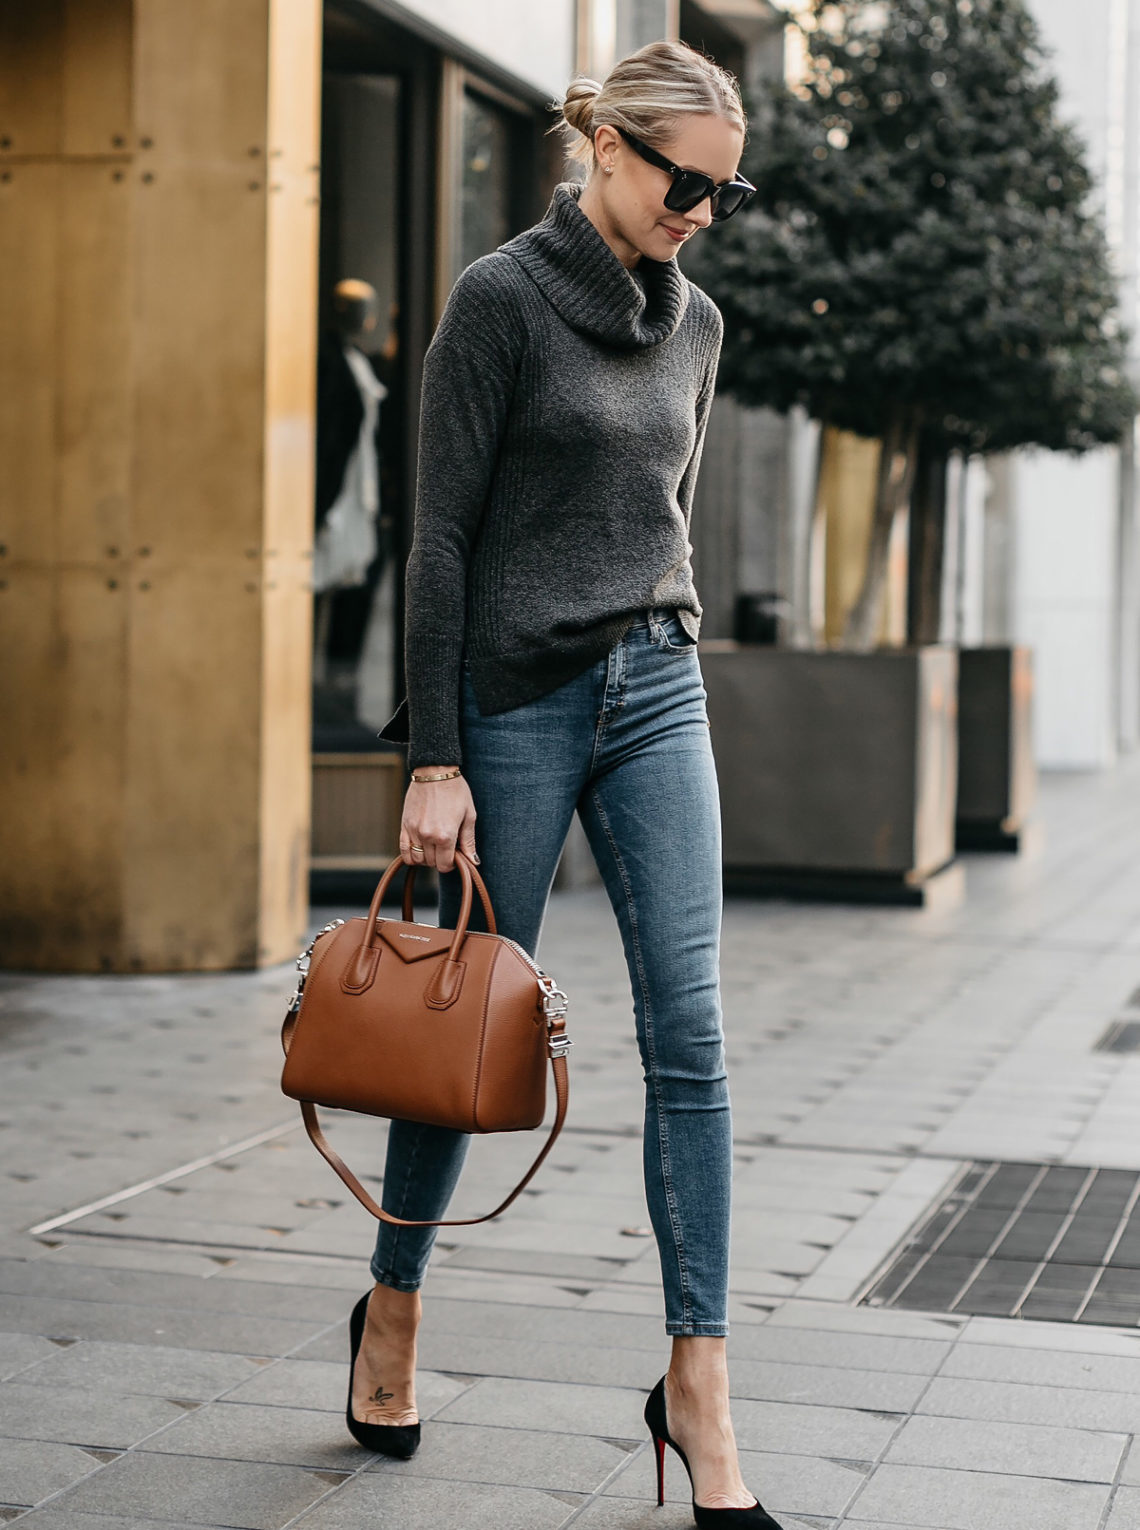 3b00c19a28e Blonde Woman Wearing Grey Turtleneck Sweater Denim Skinny Jeans Givenchy  Antigona Cognac Handbag Black Pumps Fashion